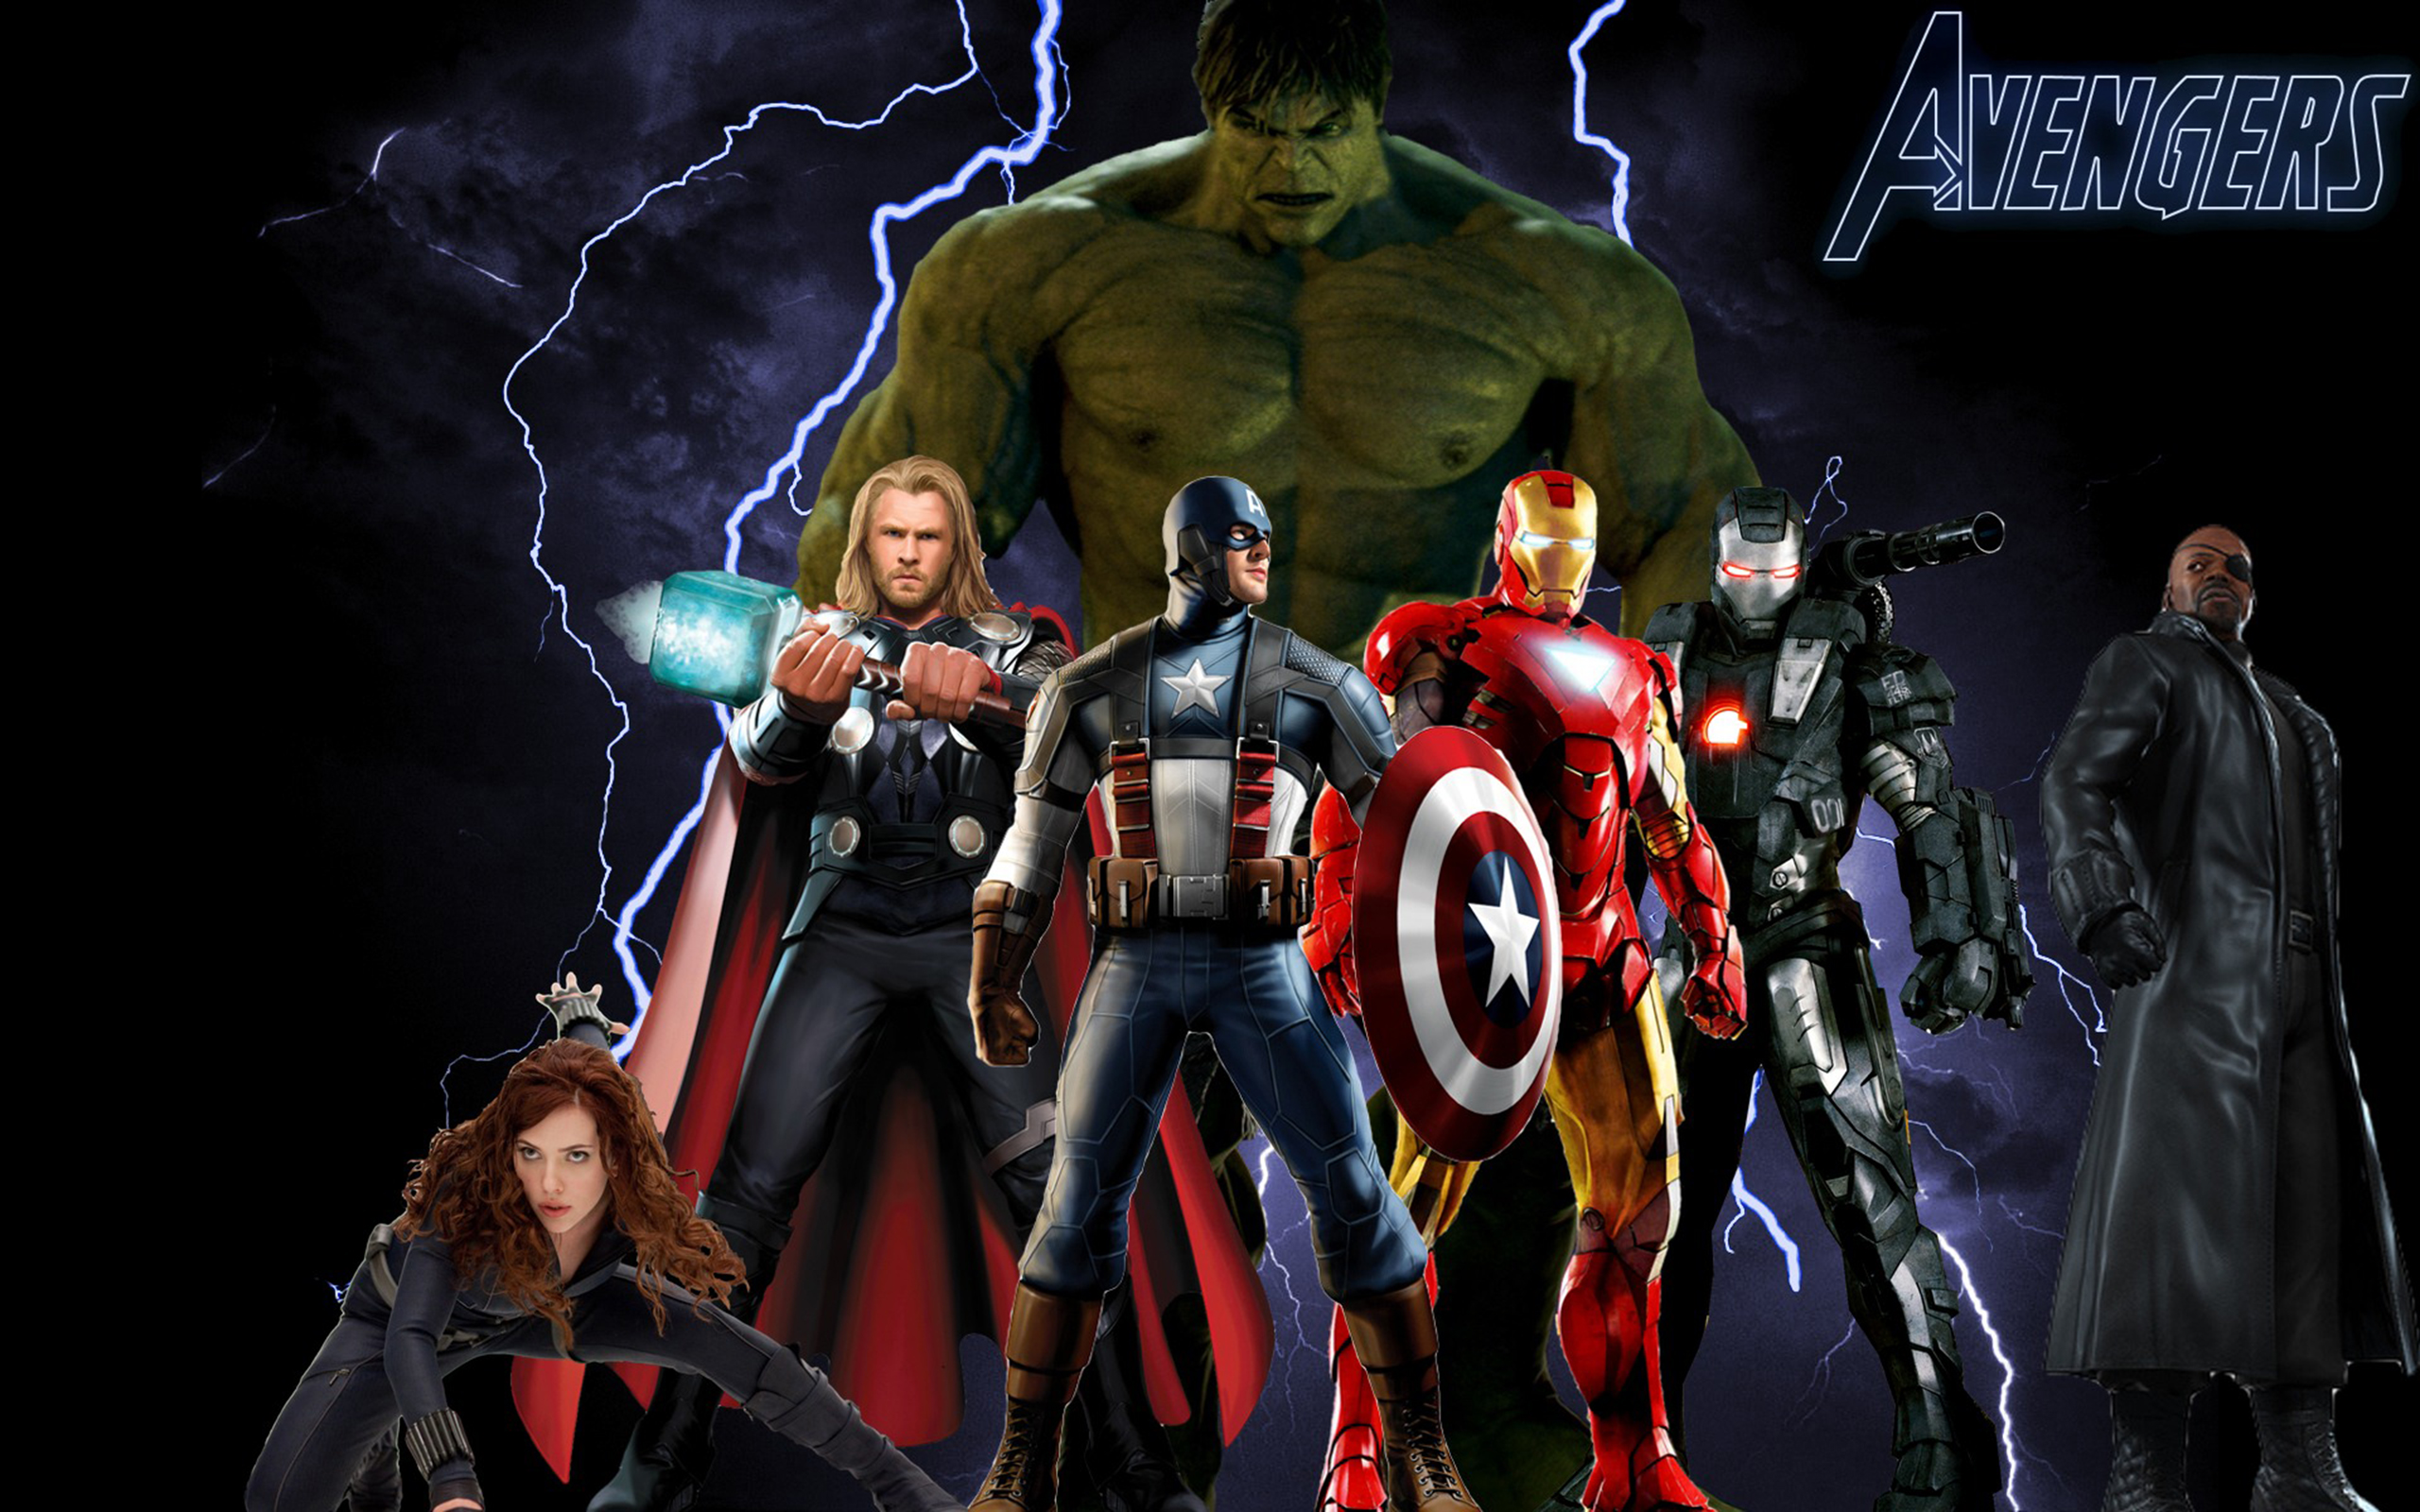 the avengers   free desktop wallpapers for widescreen, hd and mobile